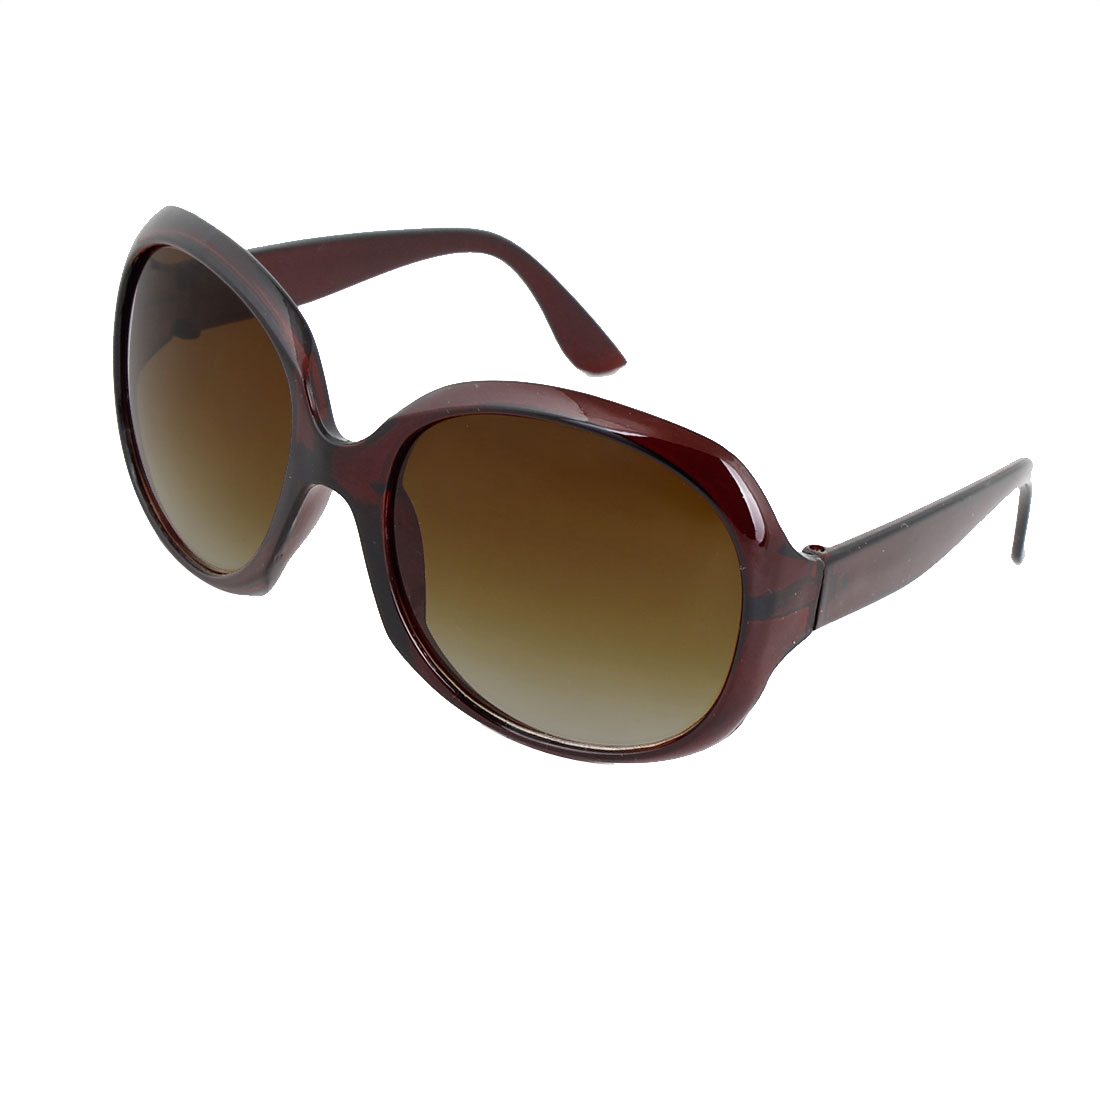 Unisex Coffee Color Plastic Full Frame Single Bridge Oversized Lens Sunglasses